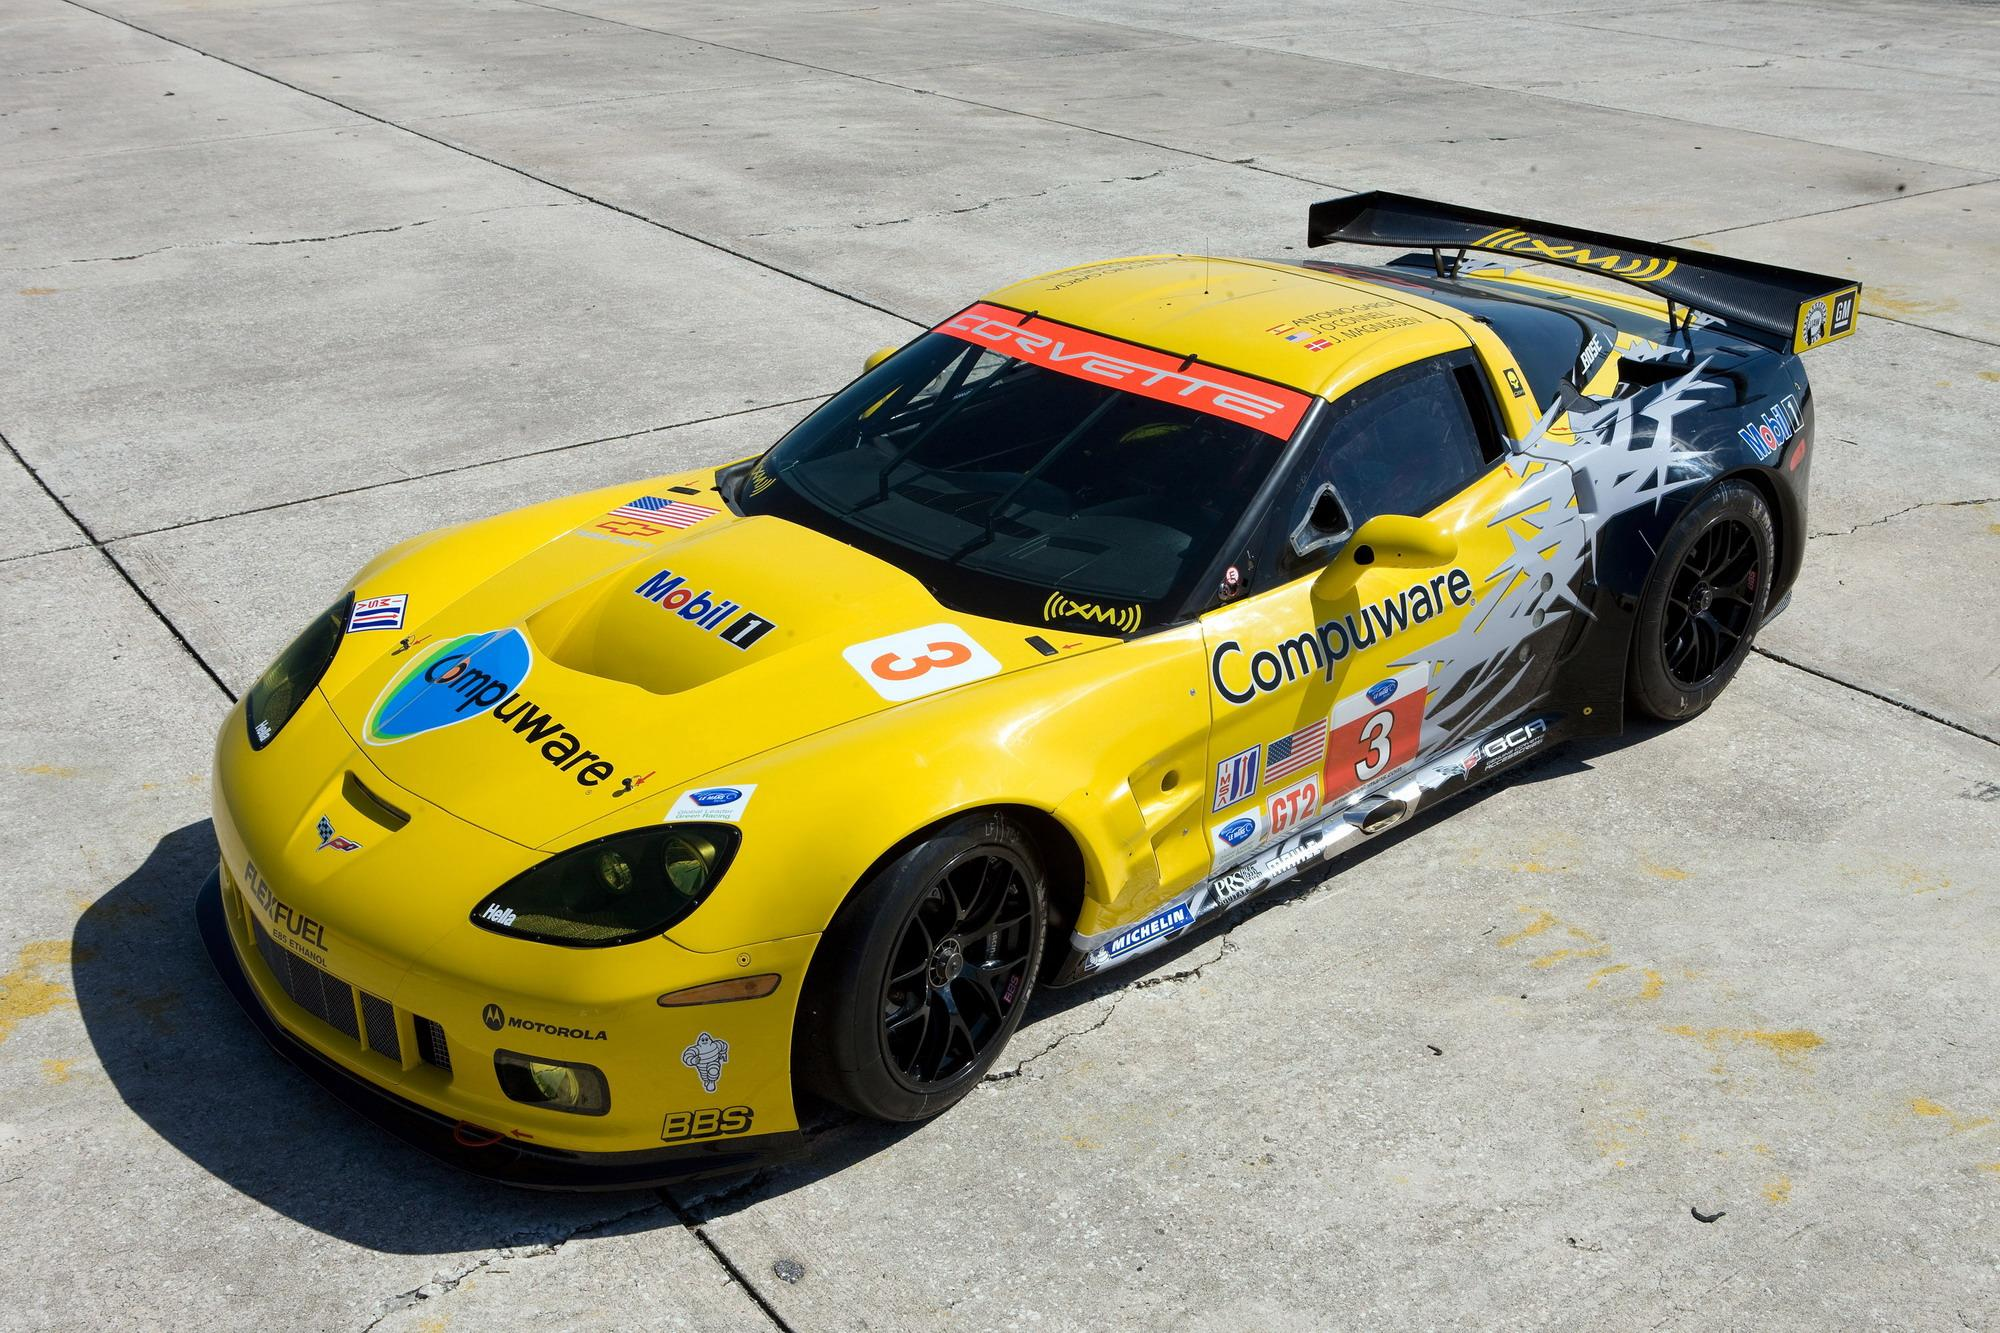 2010 Chevrolet Corvette C6 R Top Speed